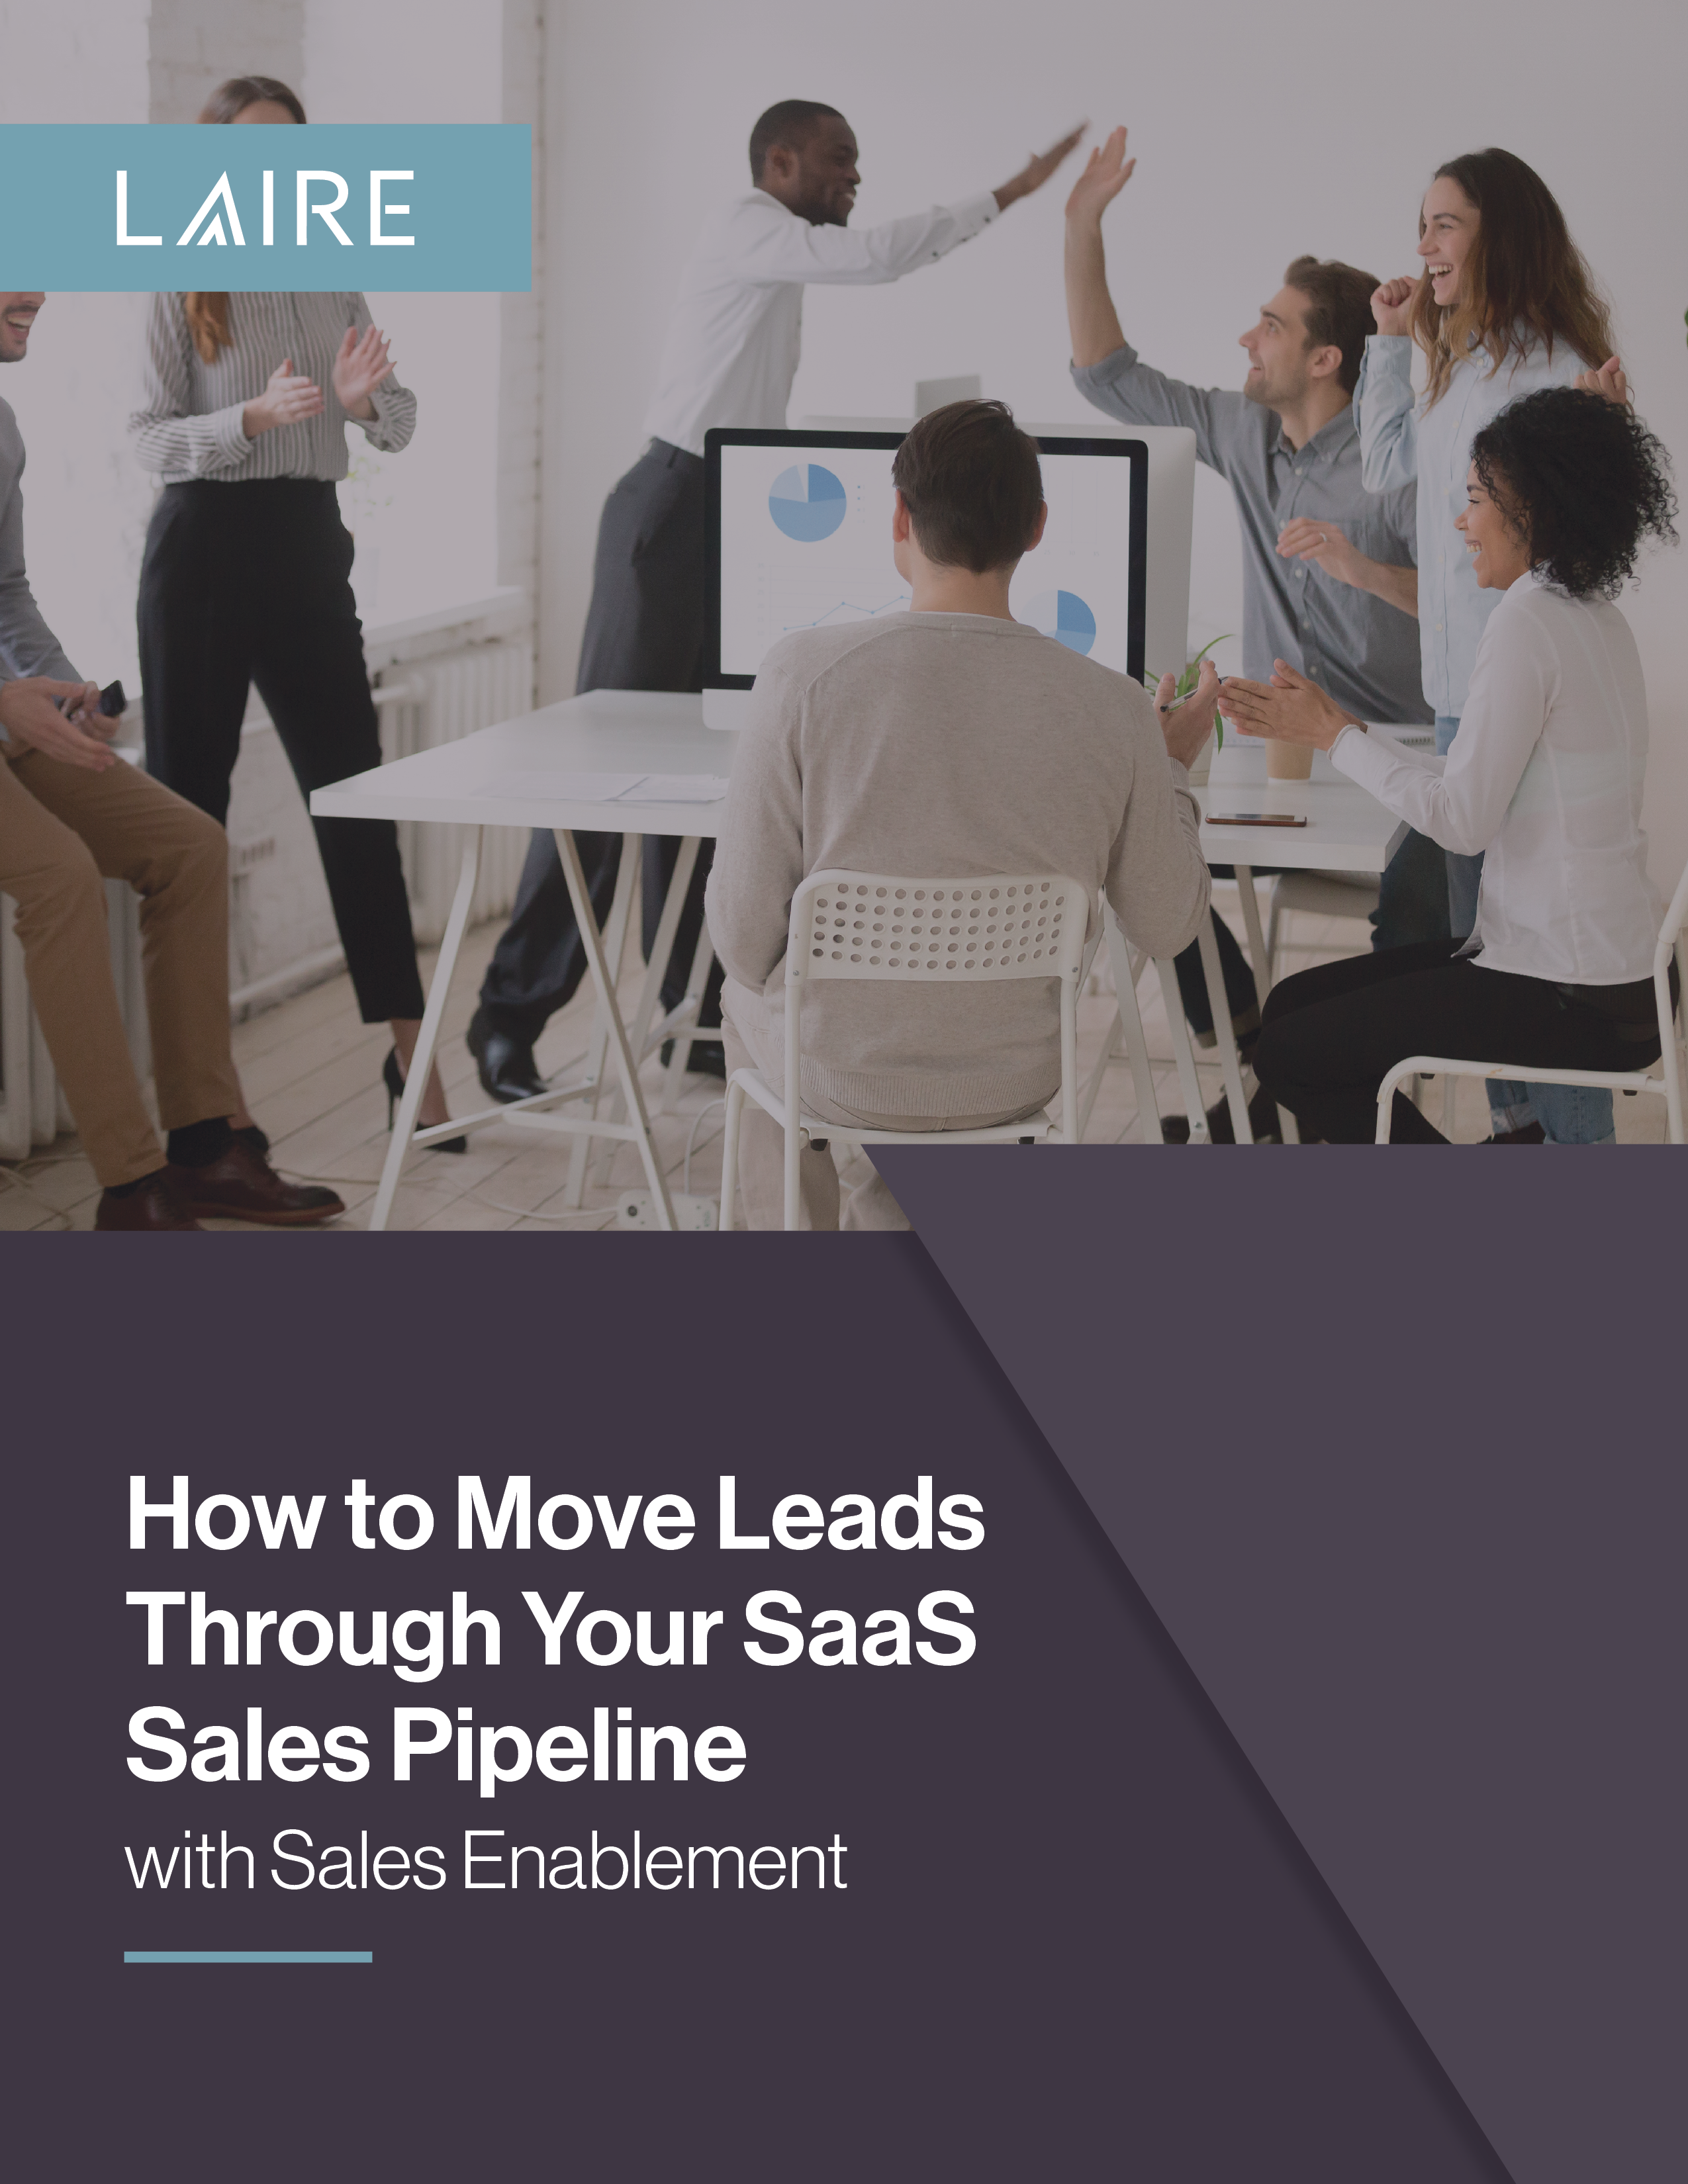 Sales Enablement for your SaaS Pipeline